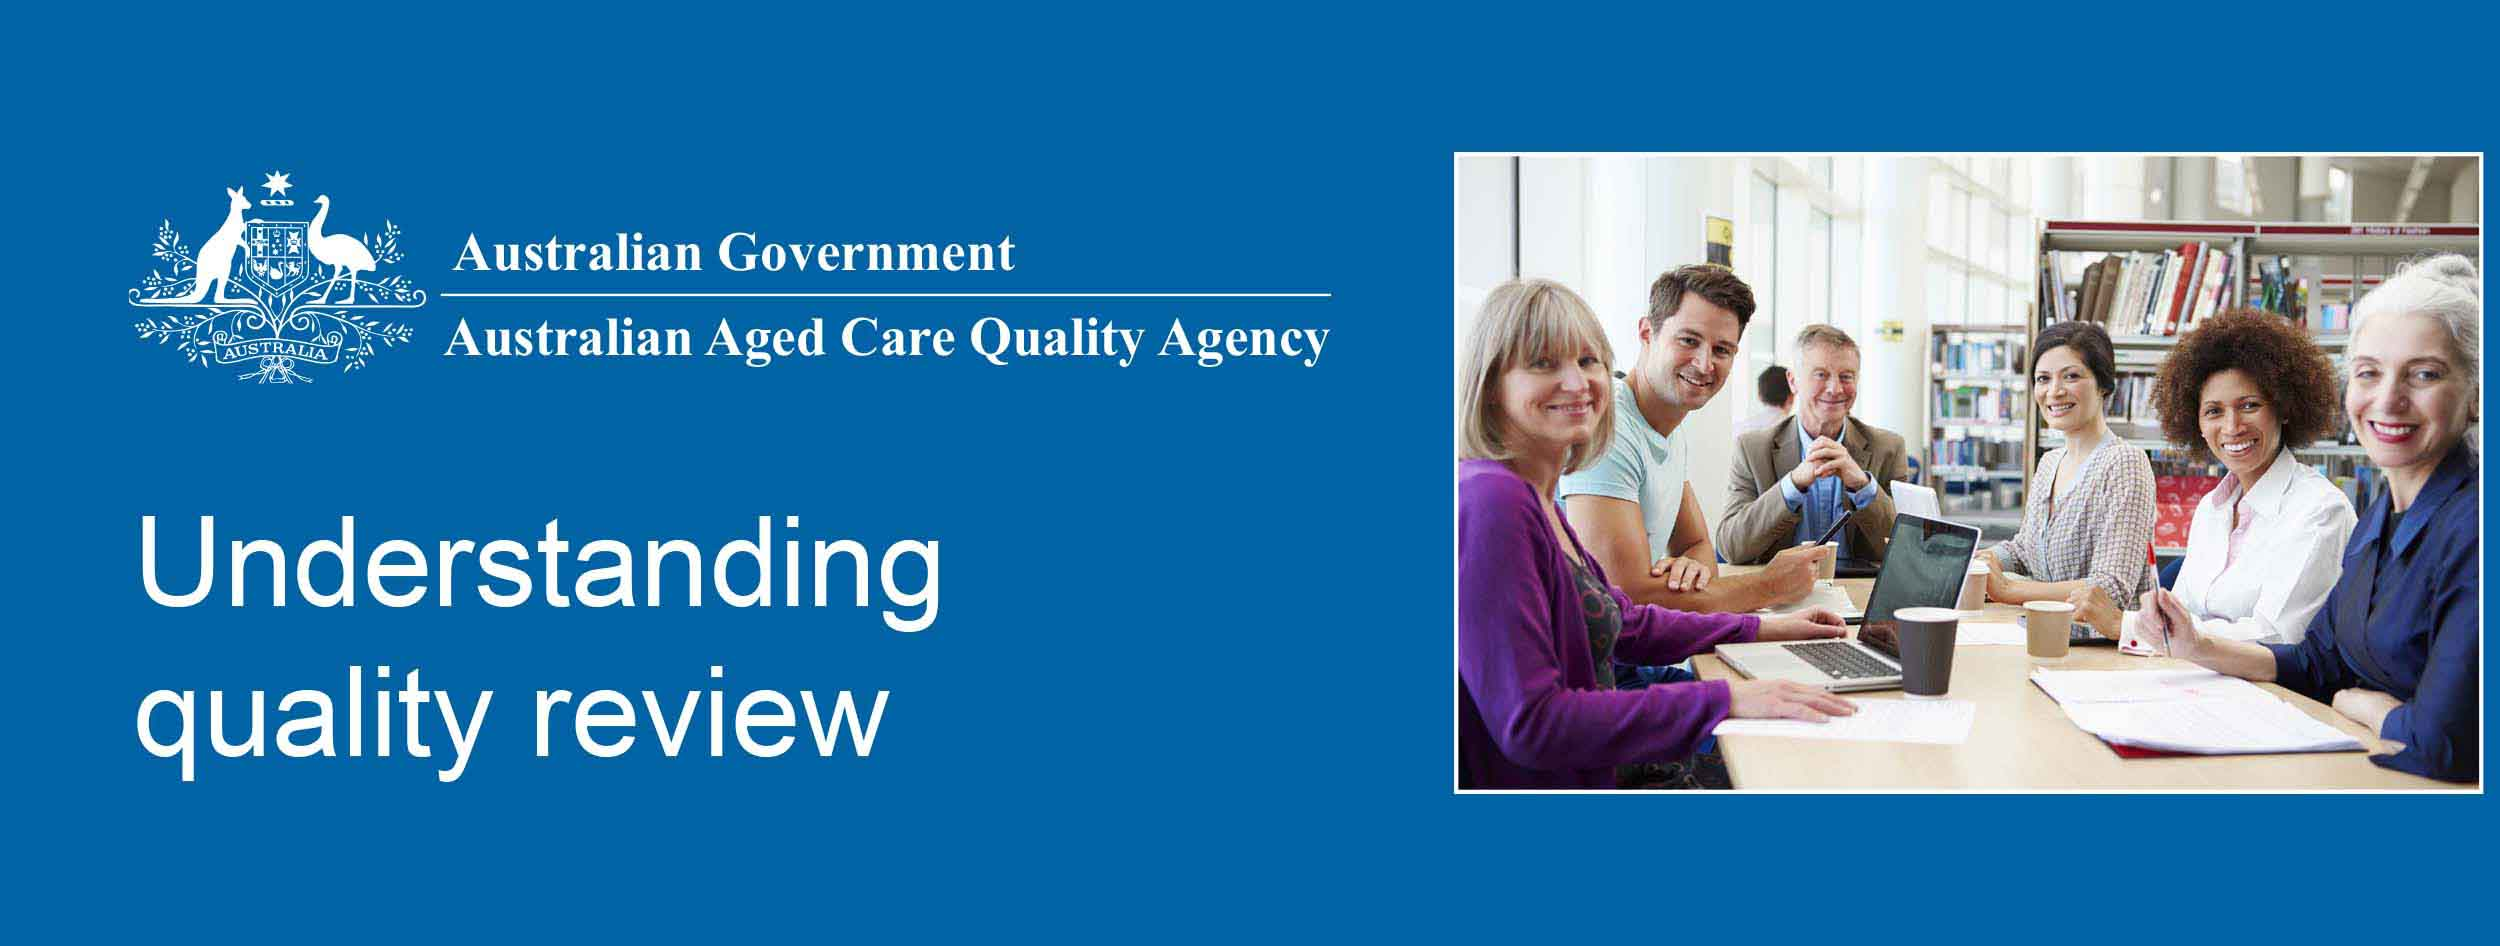 Understanding quality review - Brisbane - 10 - 11 October 2017